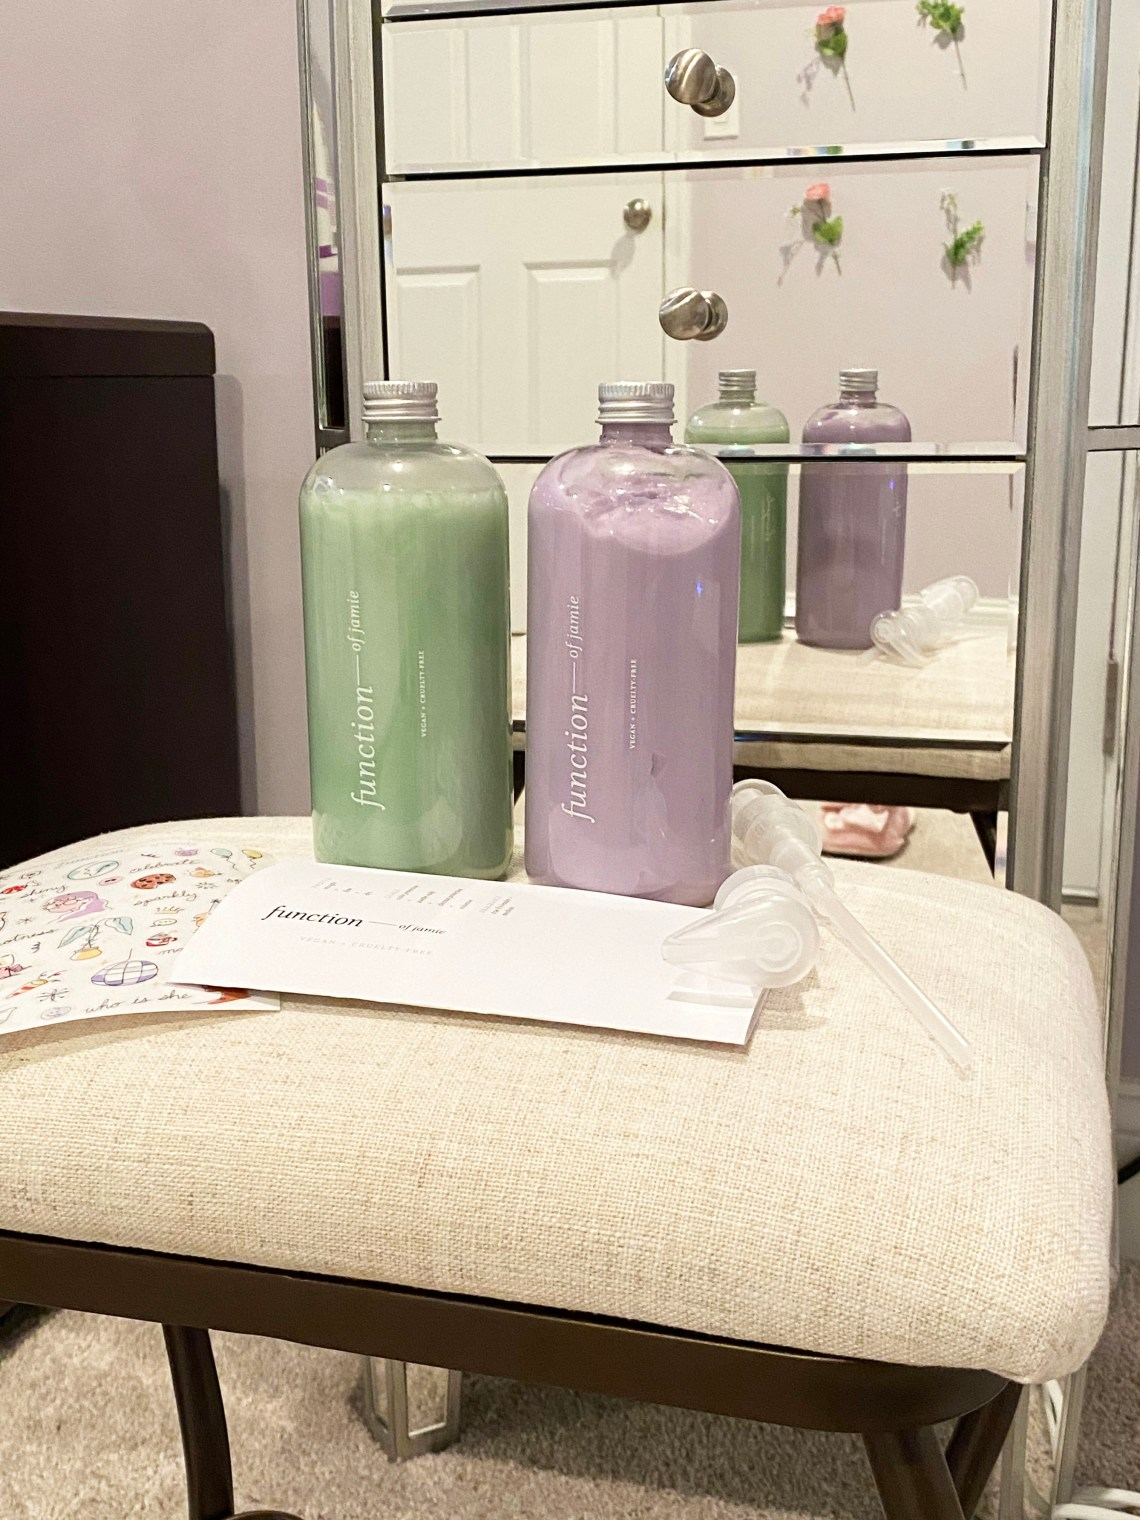 Function-of-Beauty-Shampoo-Conditioner